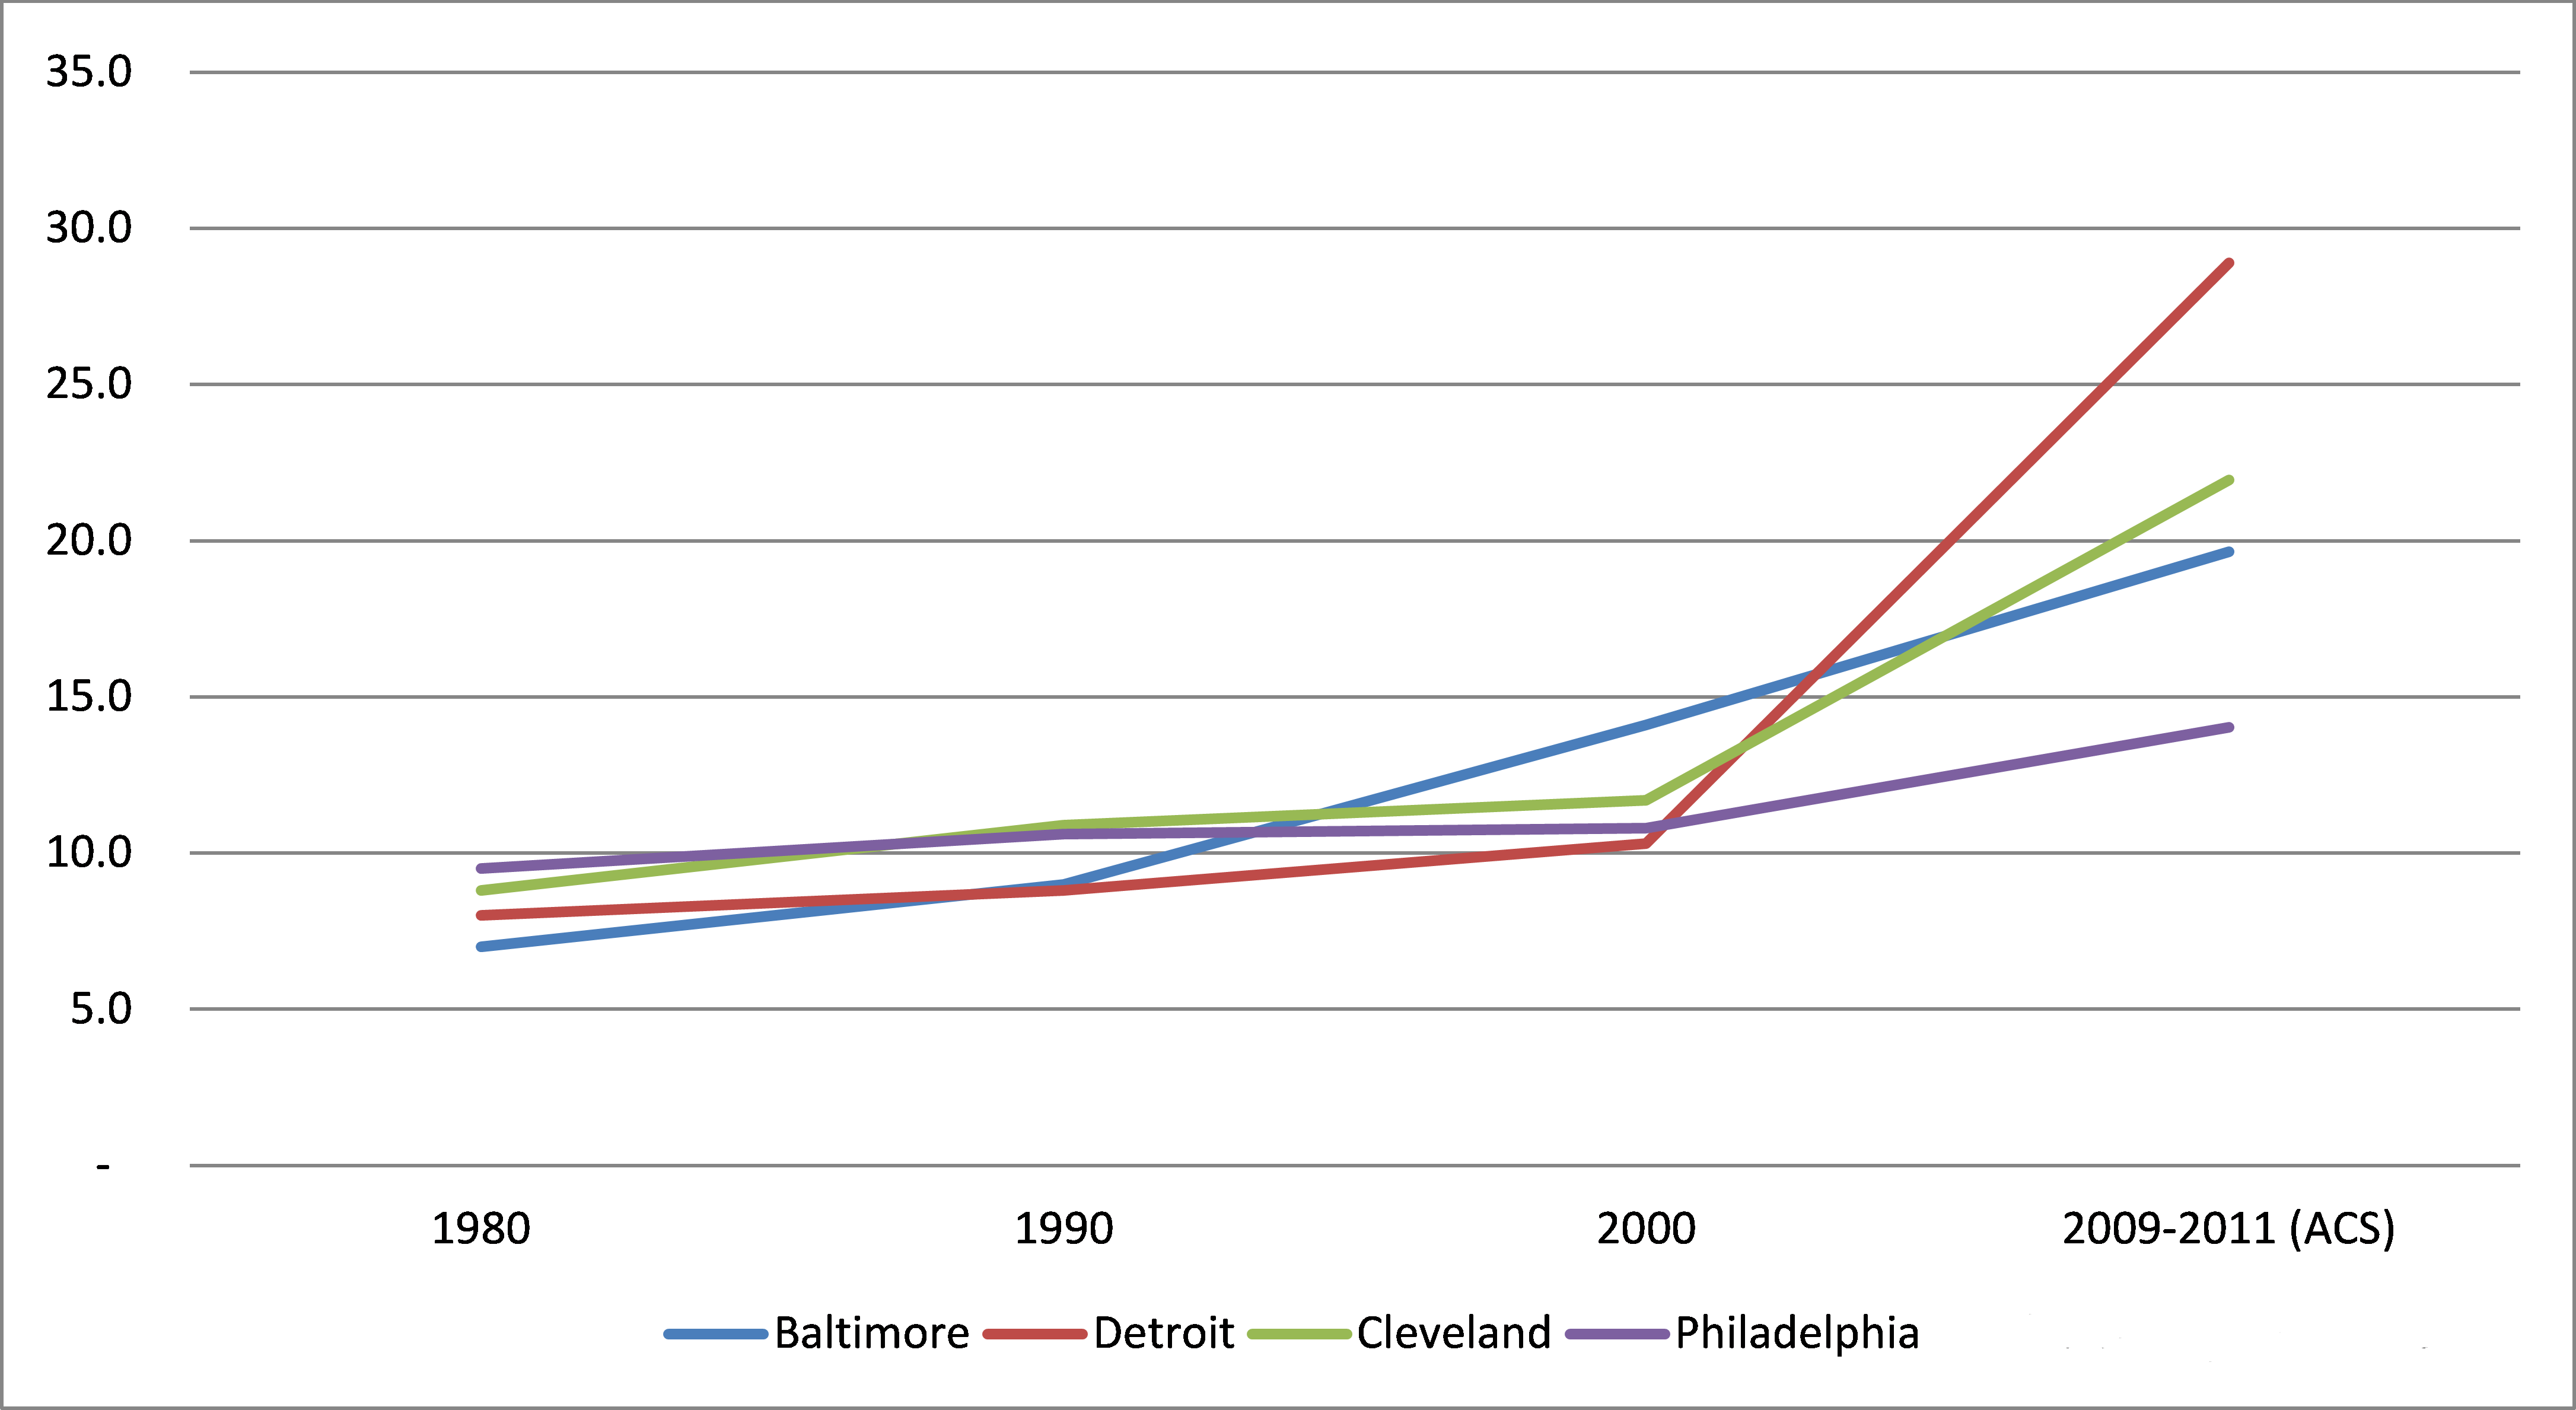 Chart showing vacancy rate for Baltimore, Detroit, Cleveland and Philadelphia. All have gone up, but Detroit has gone up most dramatically.